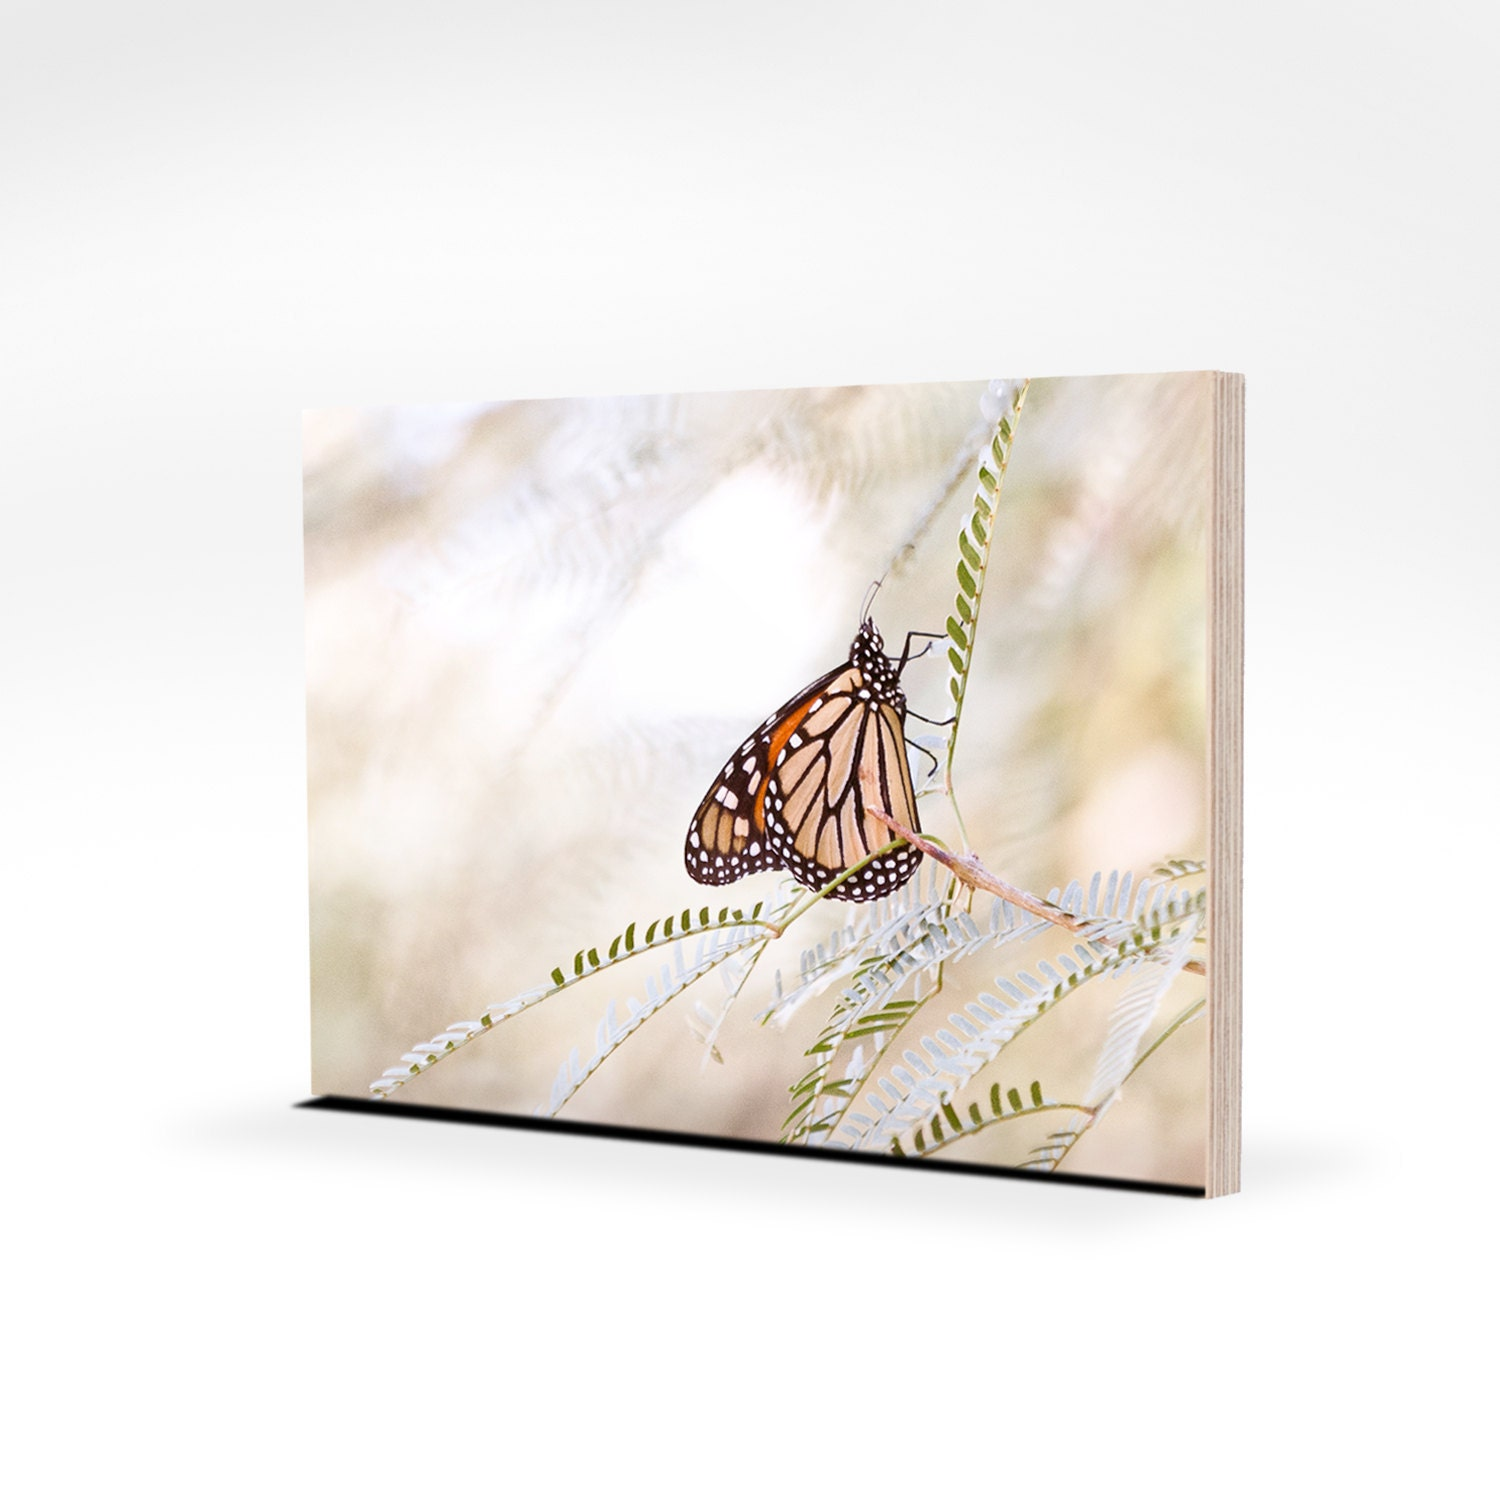 wall art ready-to-hang 5x7 butterfly woodland photo panel eco friendly maple plywerk FREE SHIPPING, no framing required